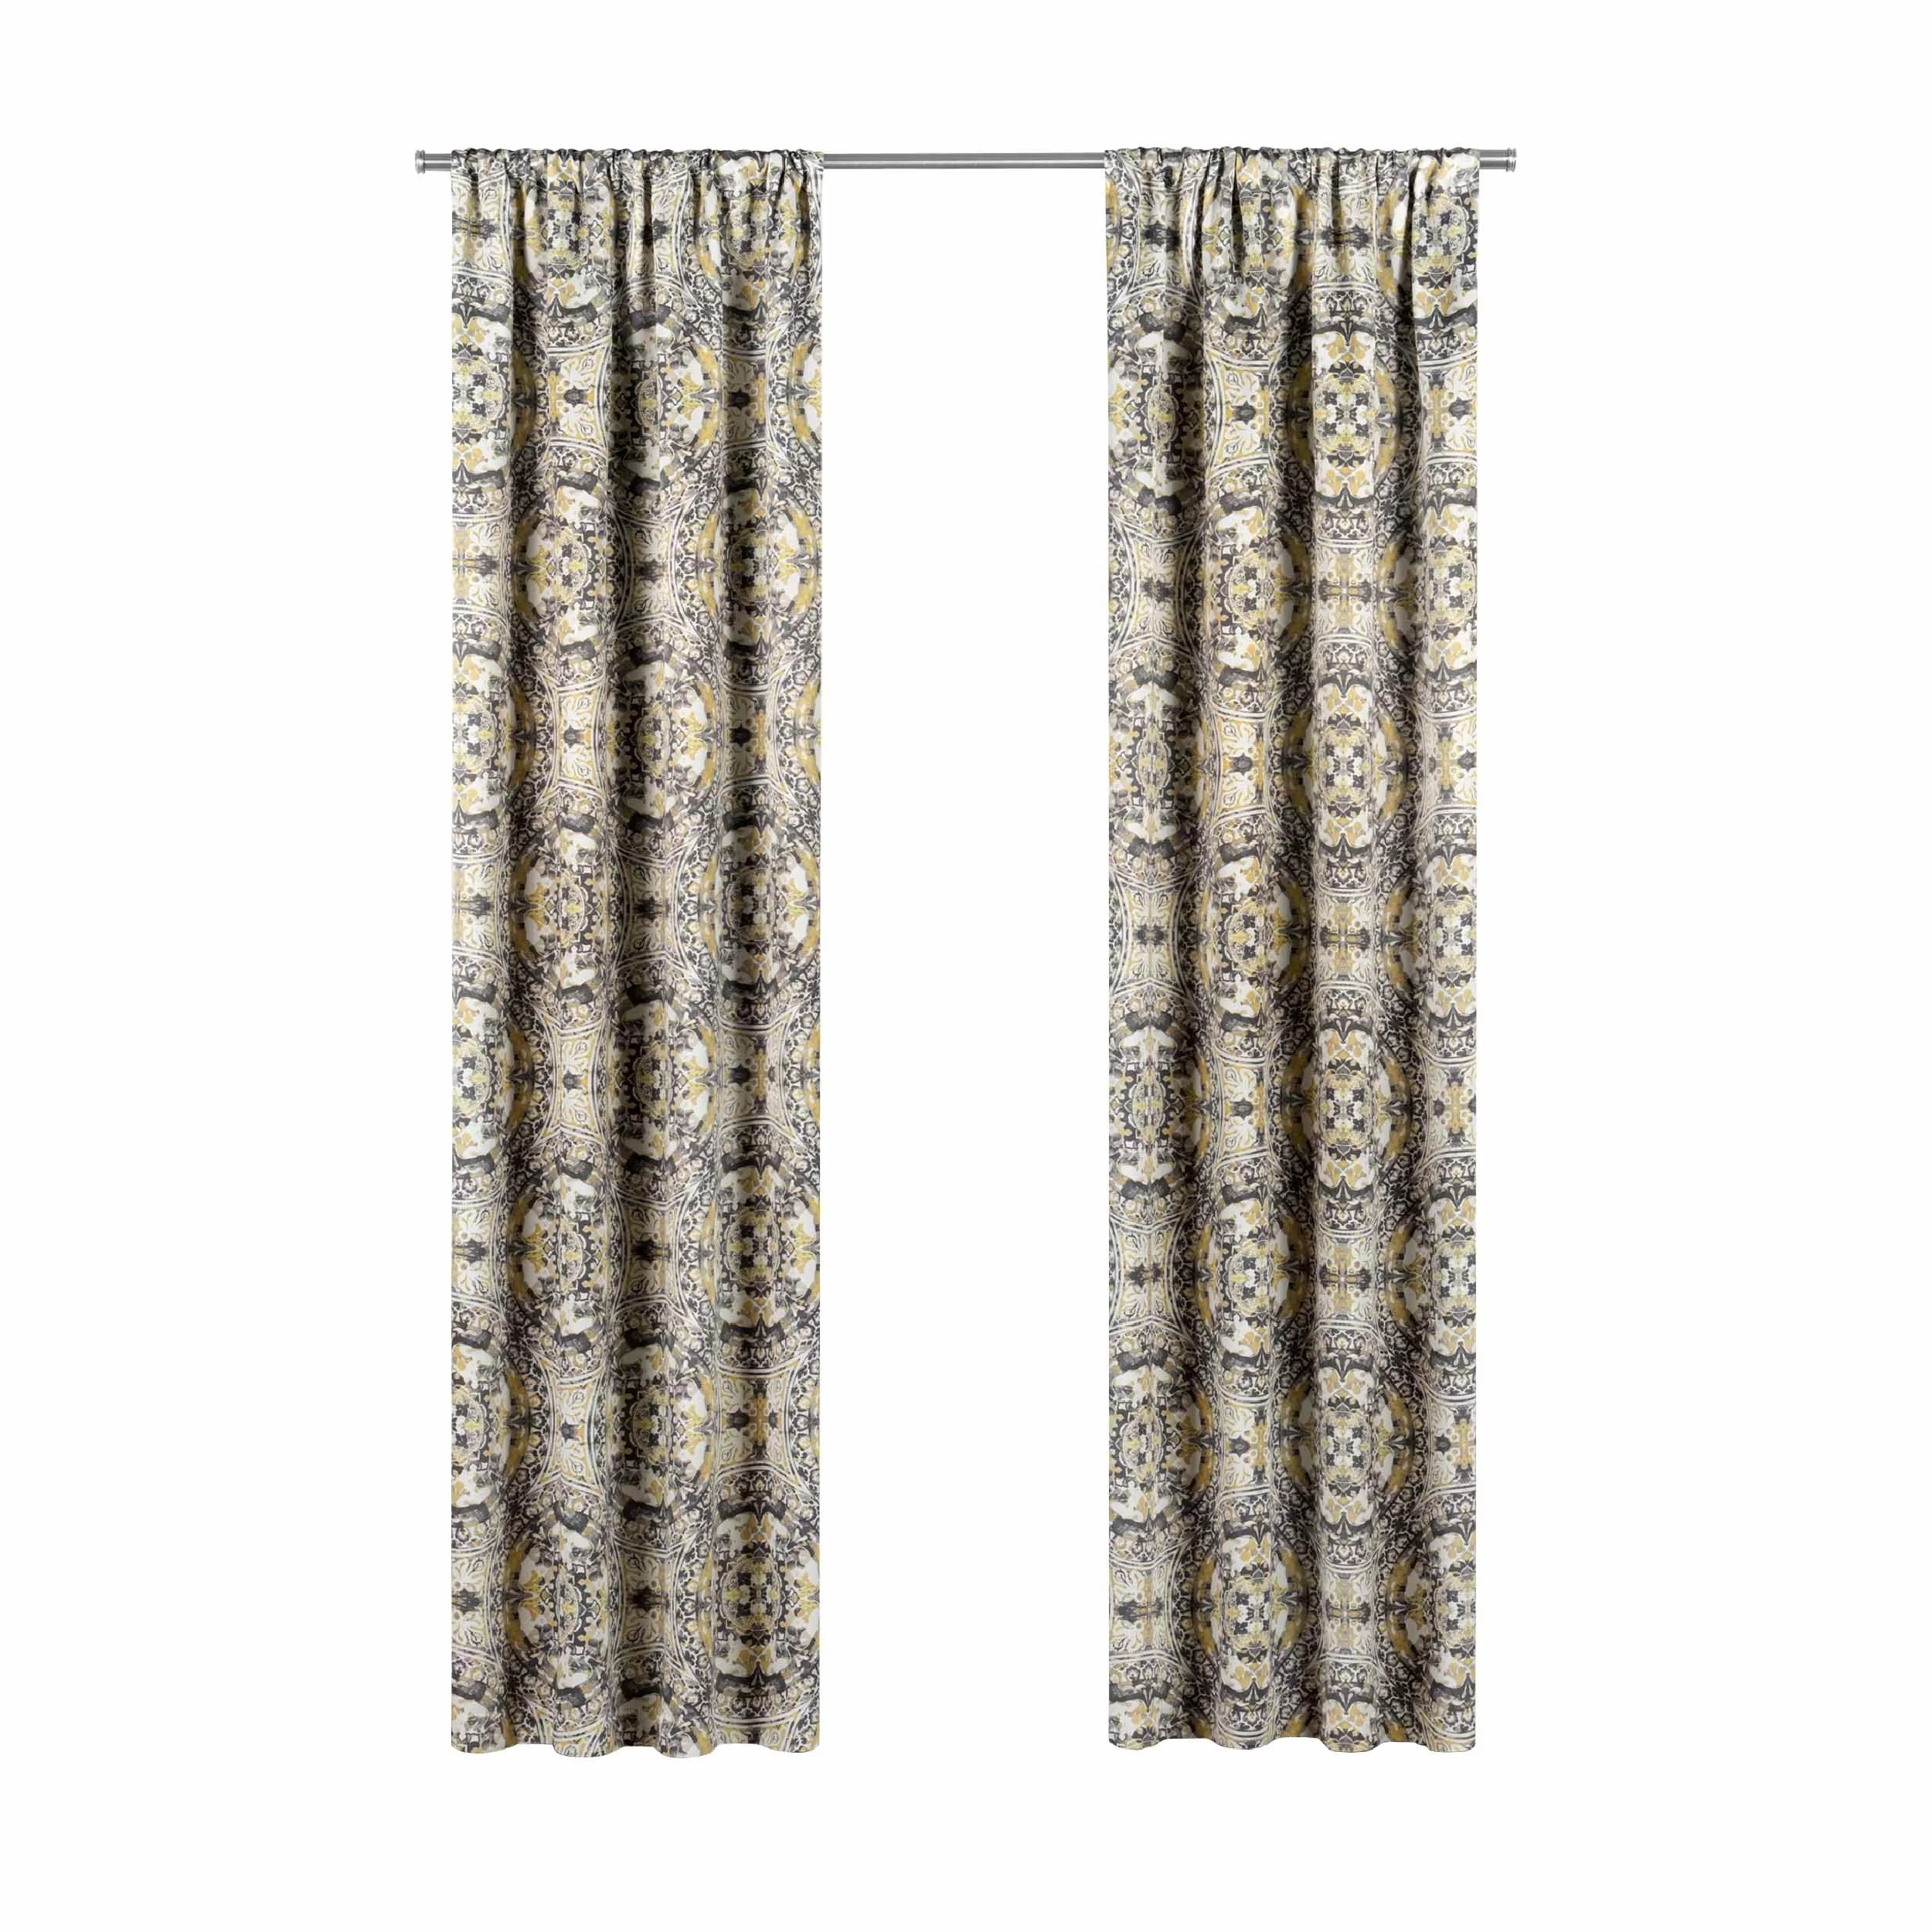 94 Inch Blackout Curtains Elena Geometric Blackout Rod Pocket Single Curtain Panel